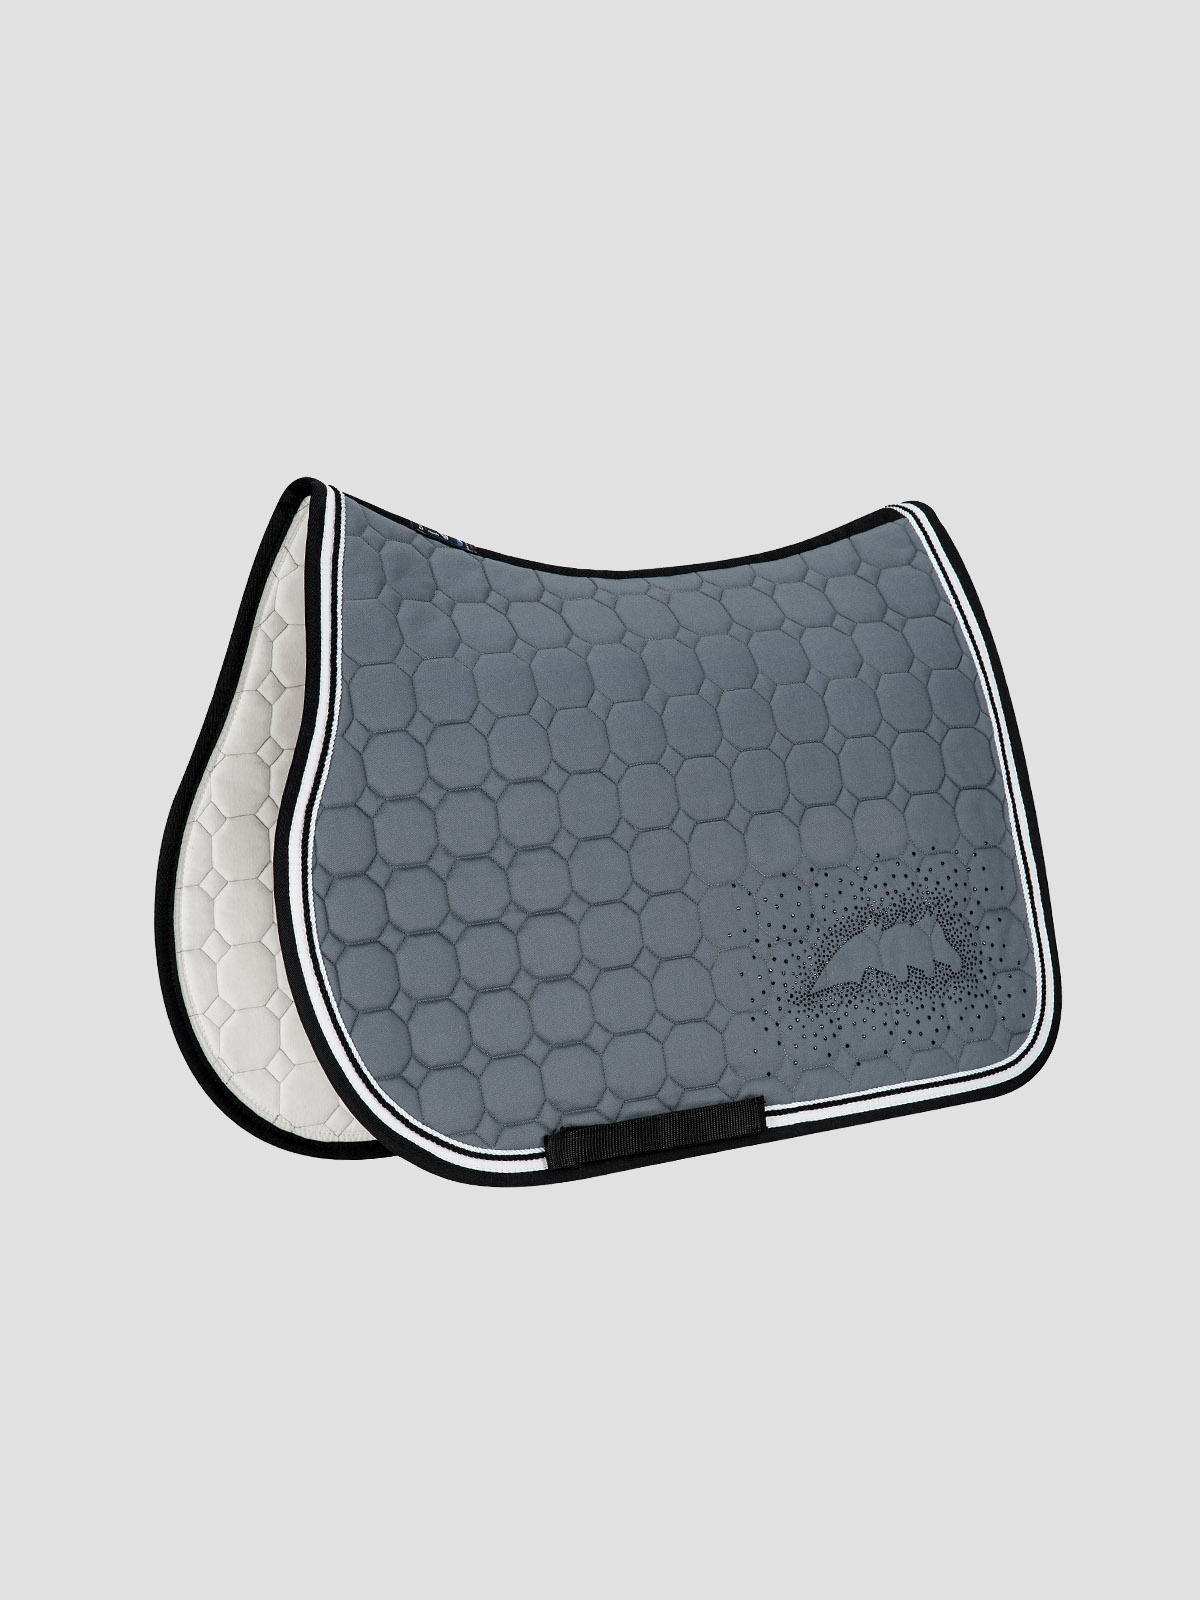 JOYCE - Octagon Saddle Pad with Equiline Logo and Studs 4